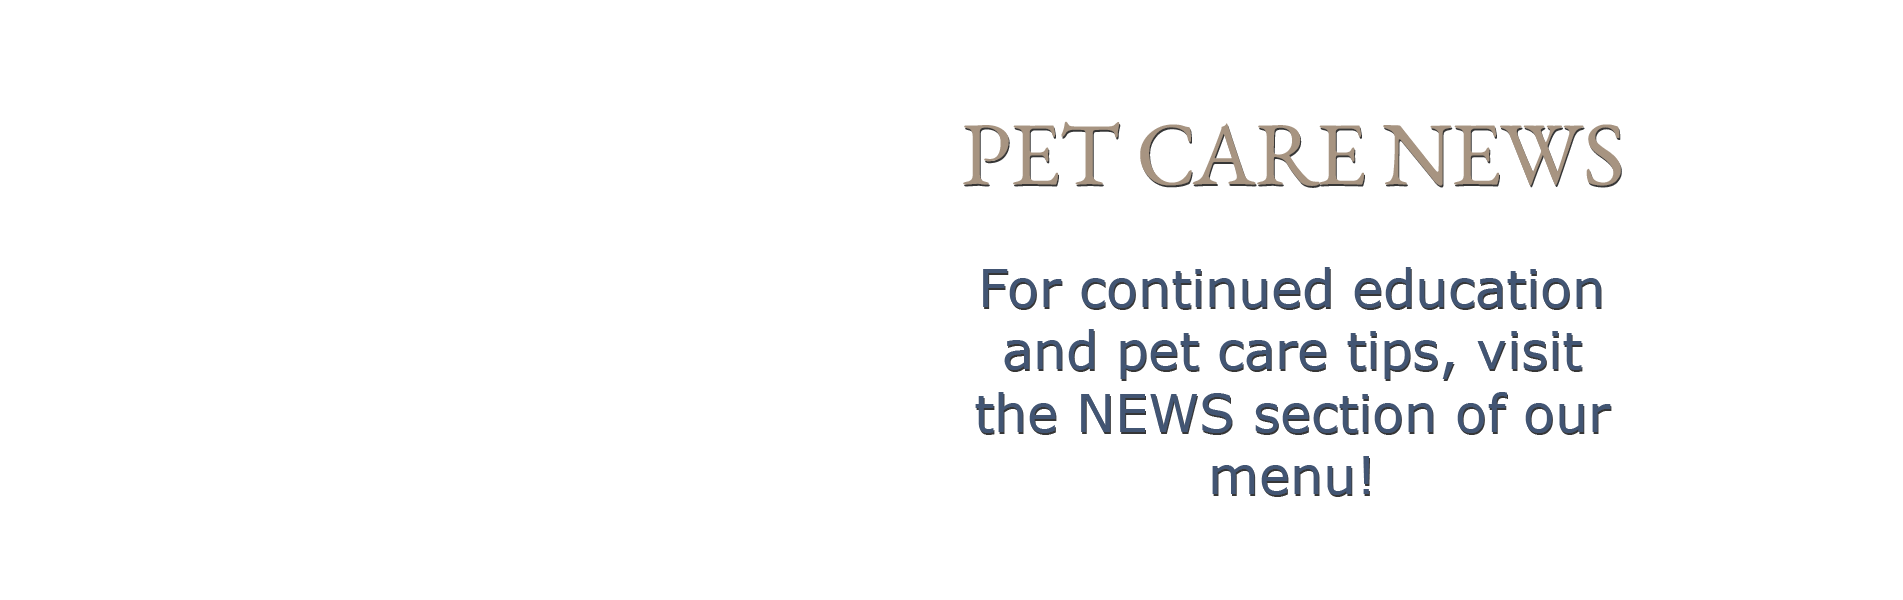 For continued education and pet care tips, visit the NEWS section of our menu!